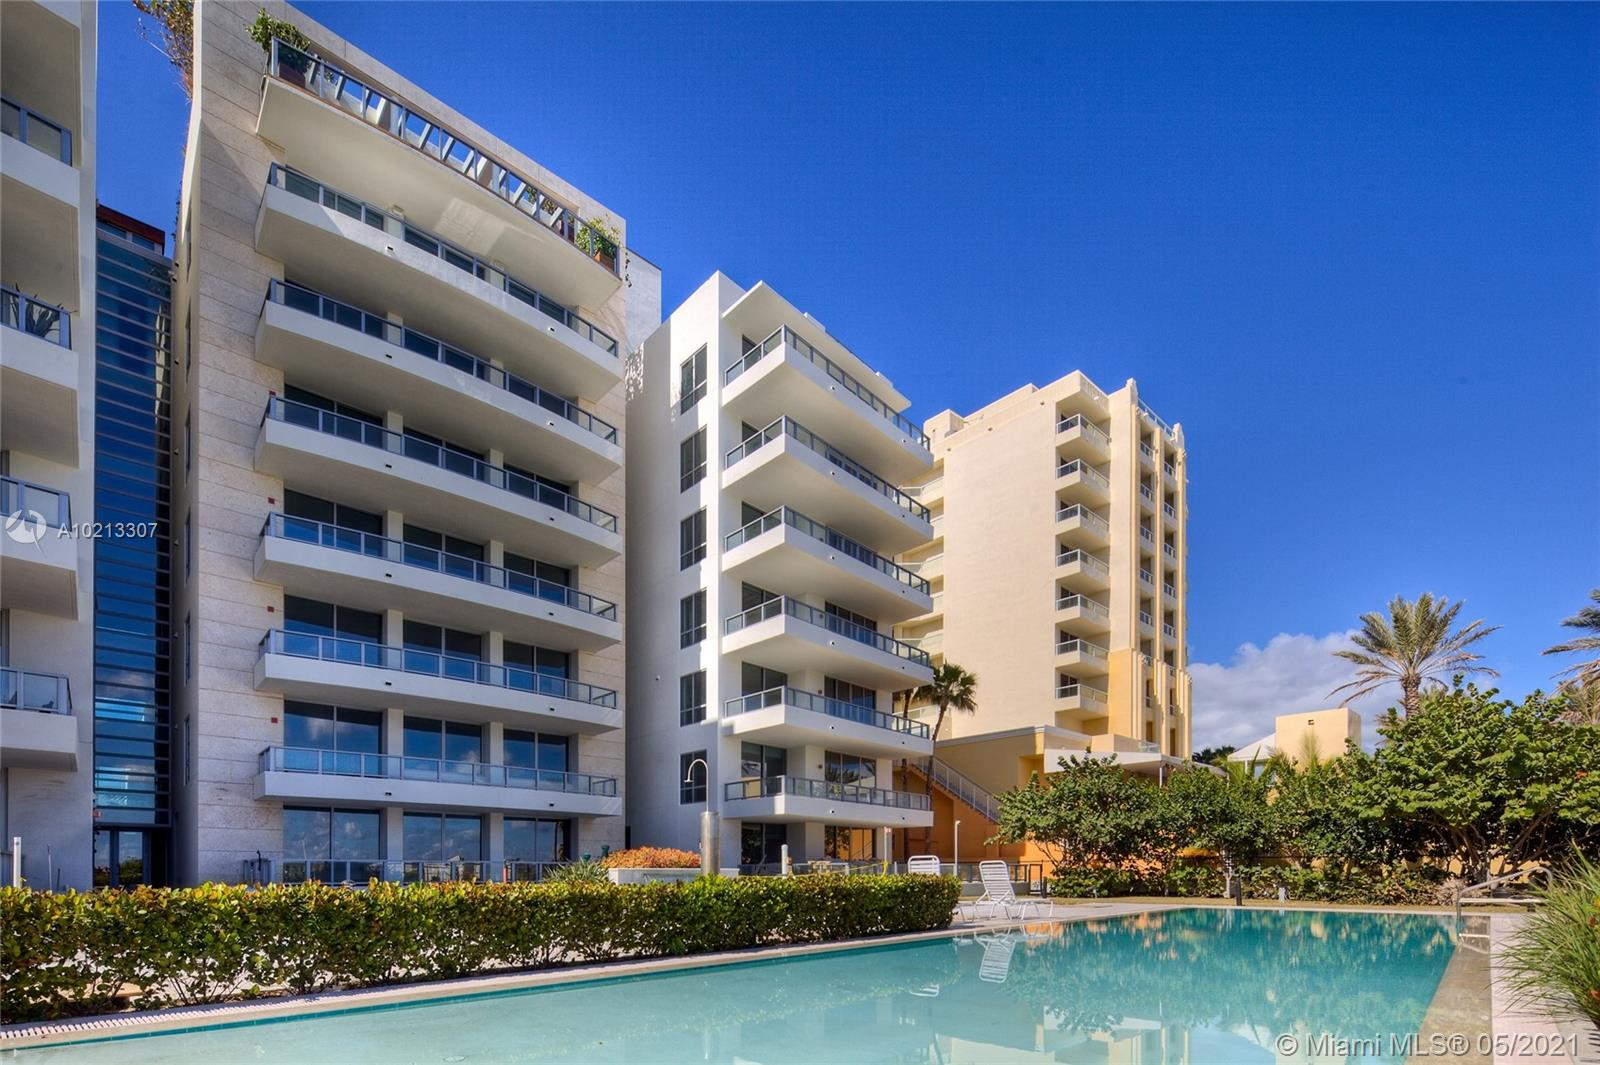 125  Ocean Drive #U-0301 For Sale A10213307, FL